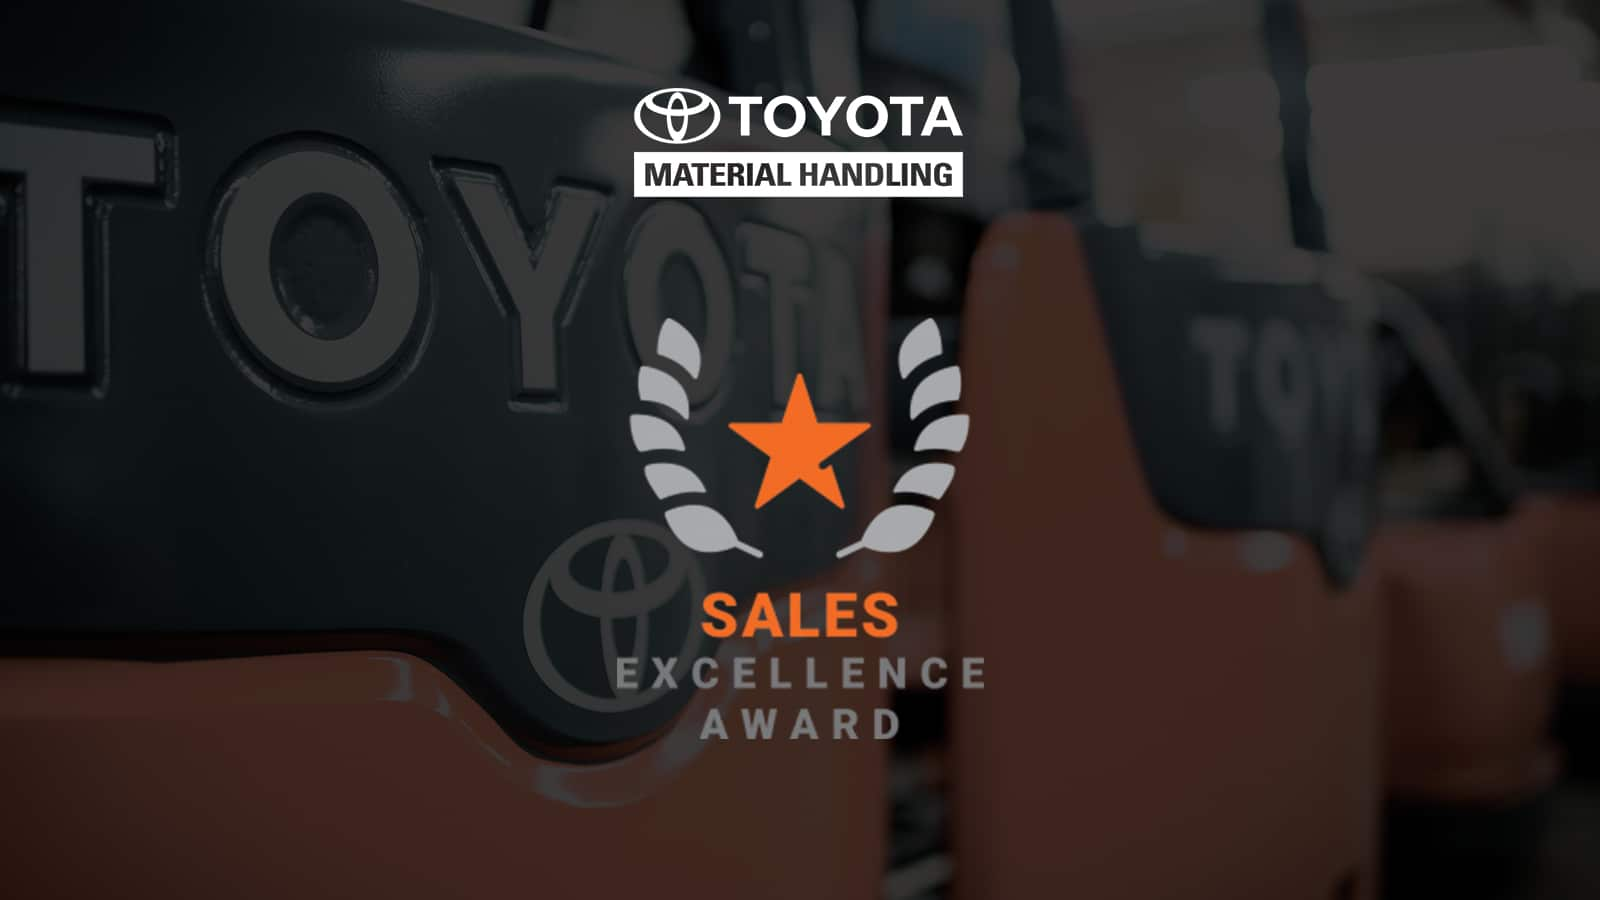 welch equipment receives toyota material handling sales excellence award